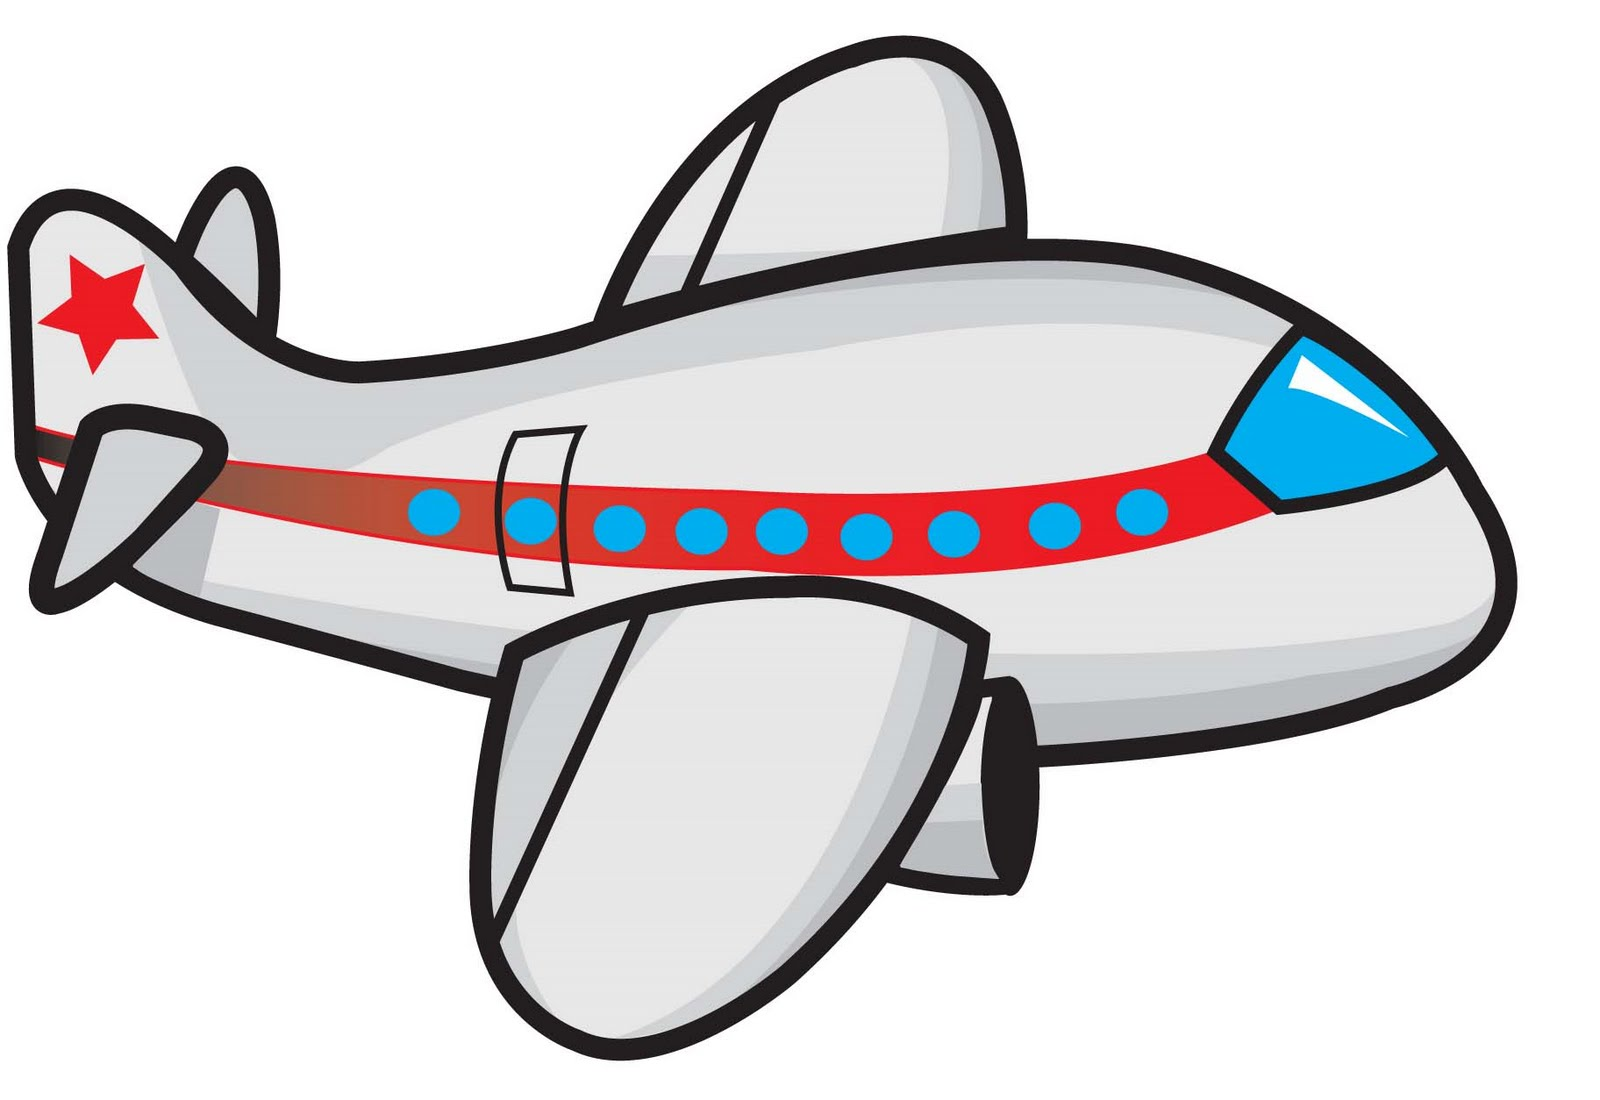 1600x1100 Animated Airplane Clipart